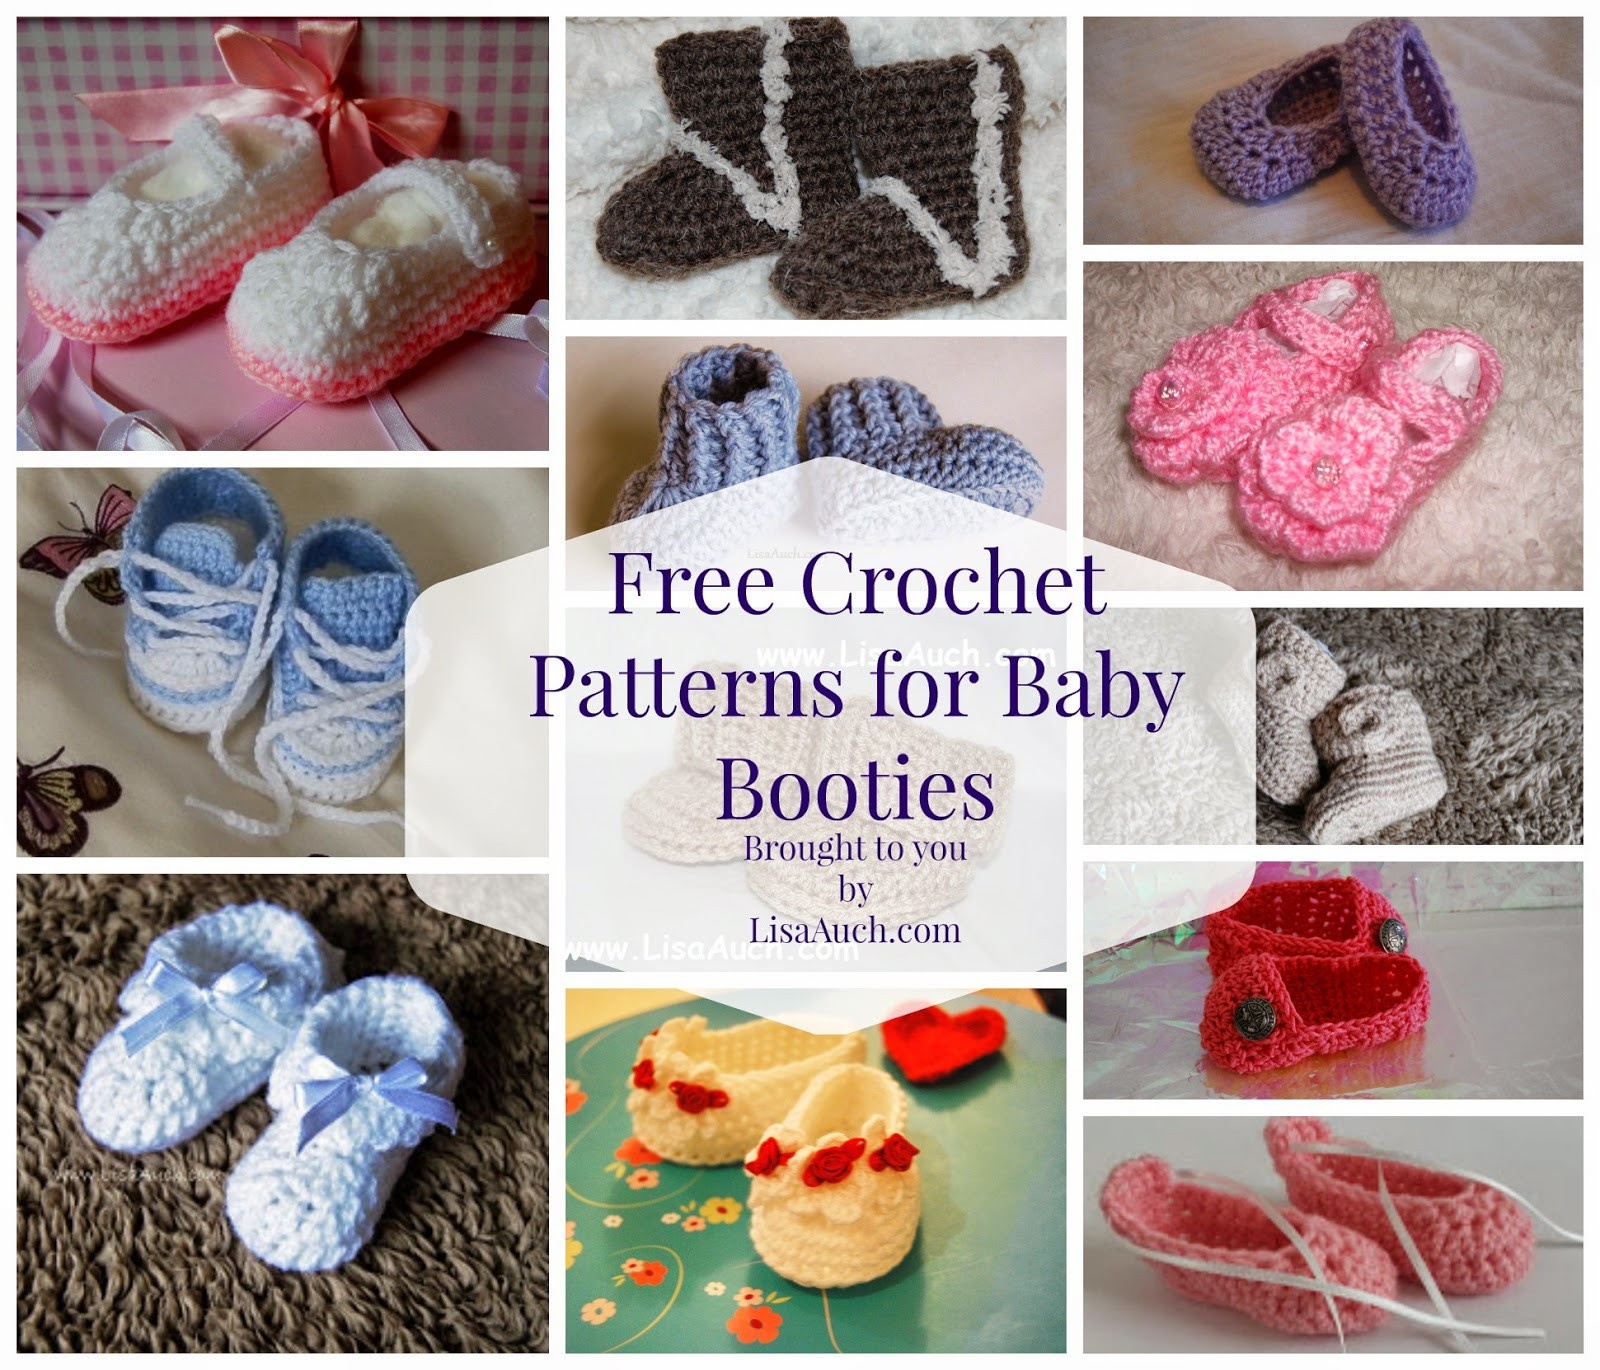 Free Crochet Patterns for Baby Booties New Free Crochet Patterns and Designs by Lisaauch Free Of Luxury 40 Pictures Free Crochet Patterns for Baby Booties